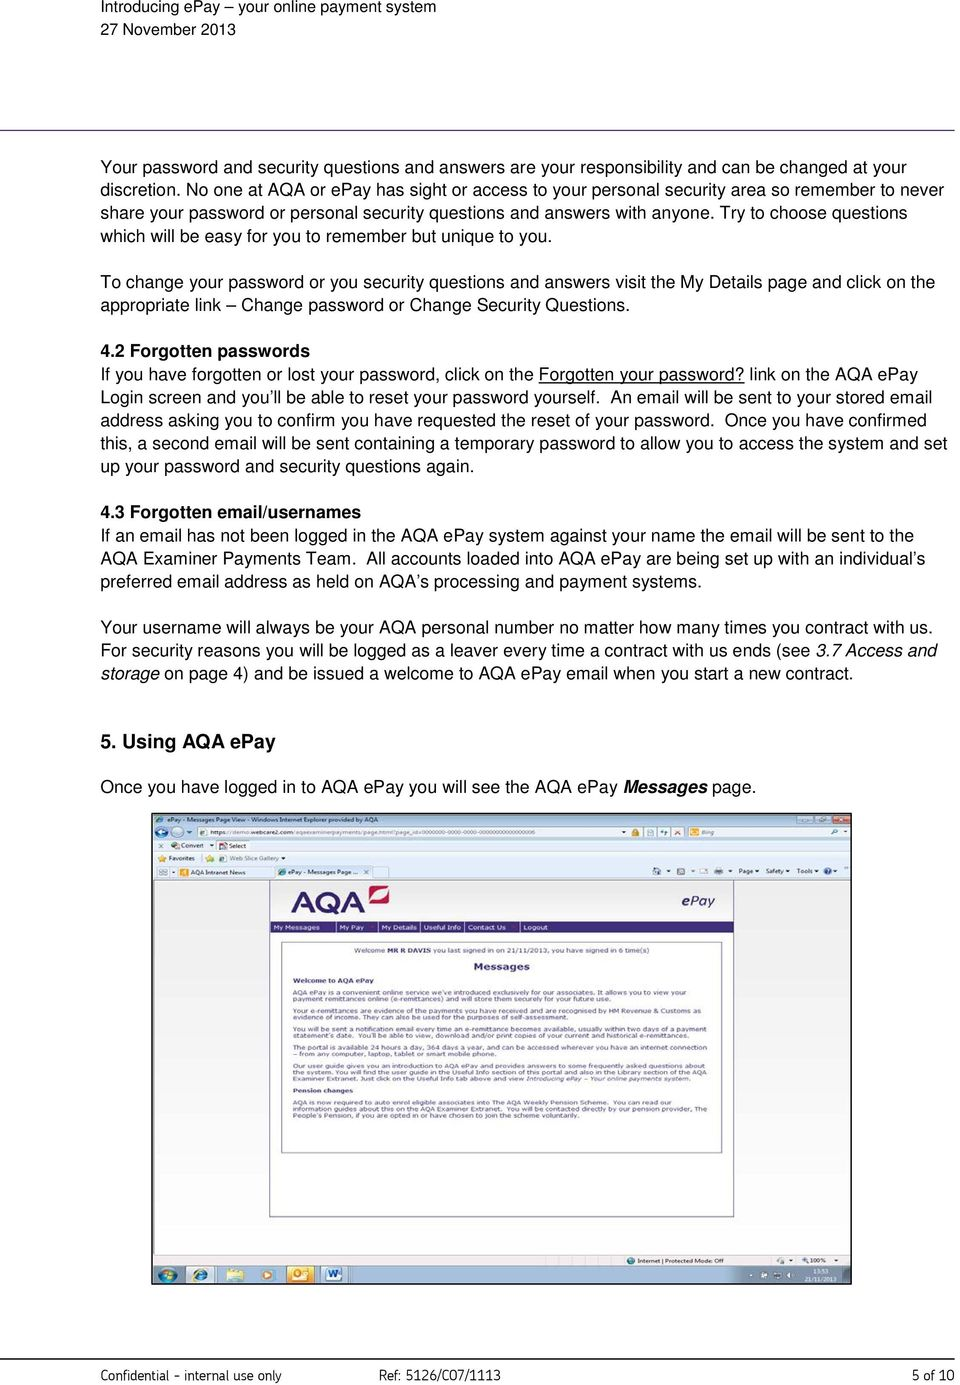 Introducing AQA epay Your online payment system - PDF